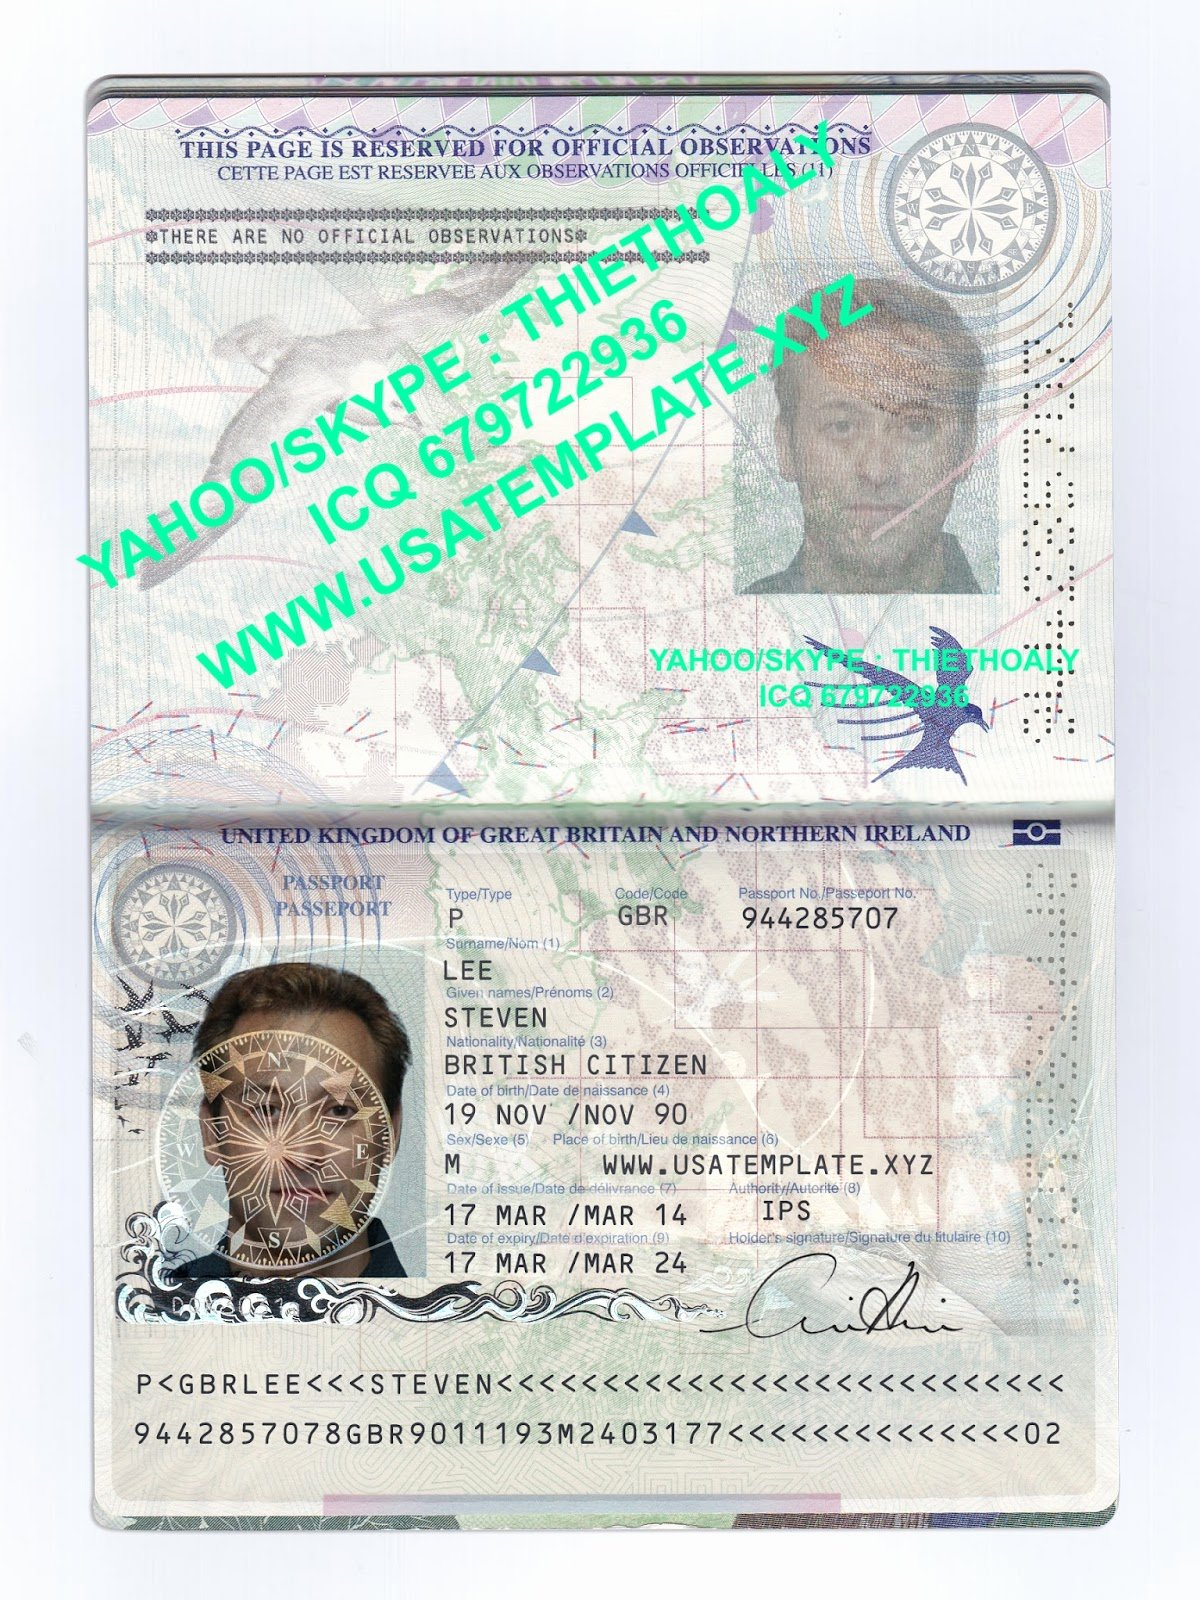 Passport Photo Template Psd Inspirational Passport Psd Images Usseek